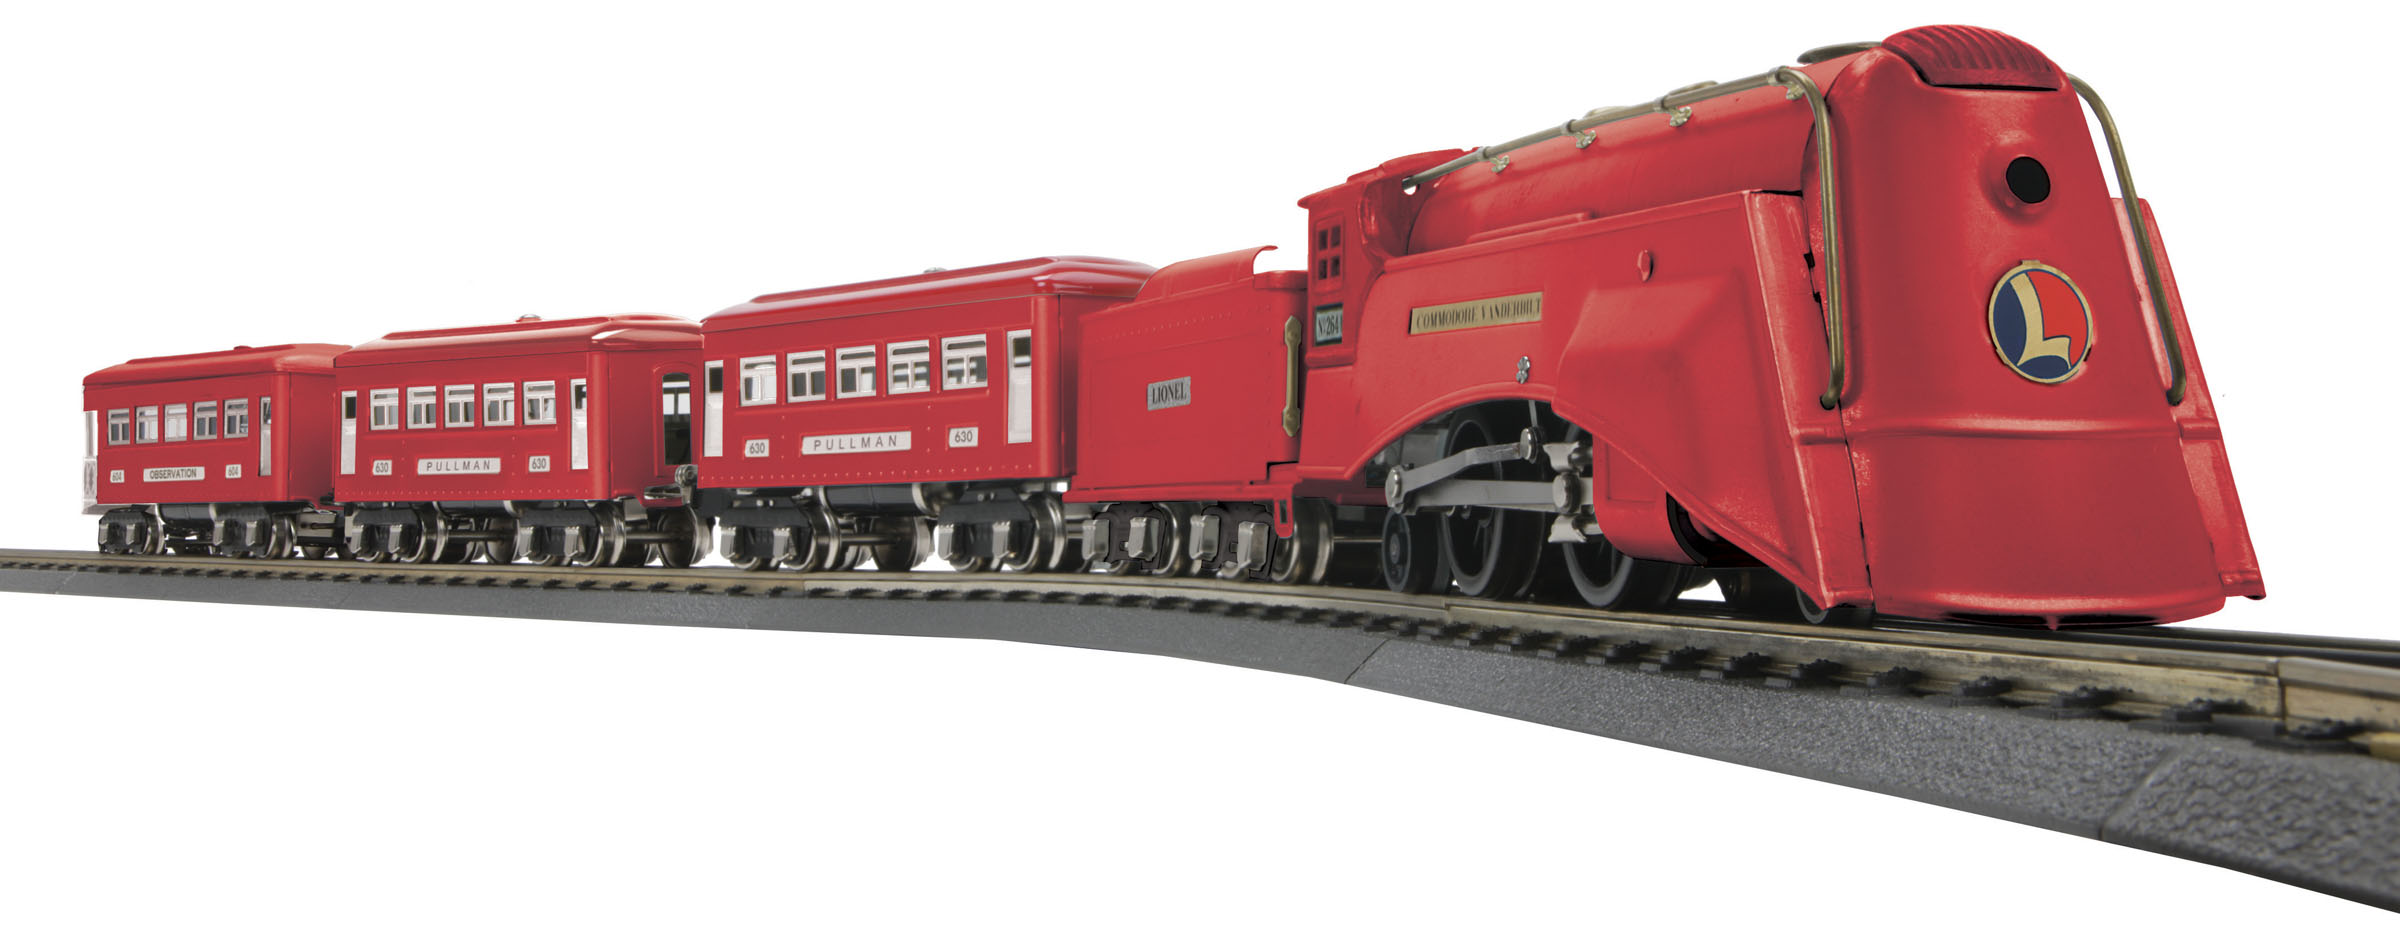 11-6047-1 | MTH ELECTRIC TRAINS